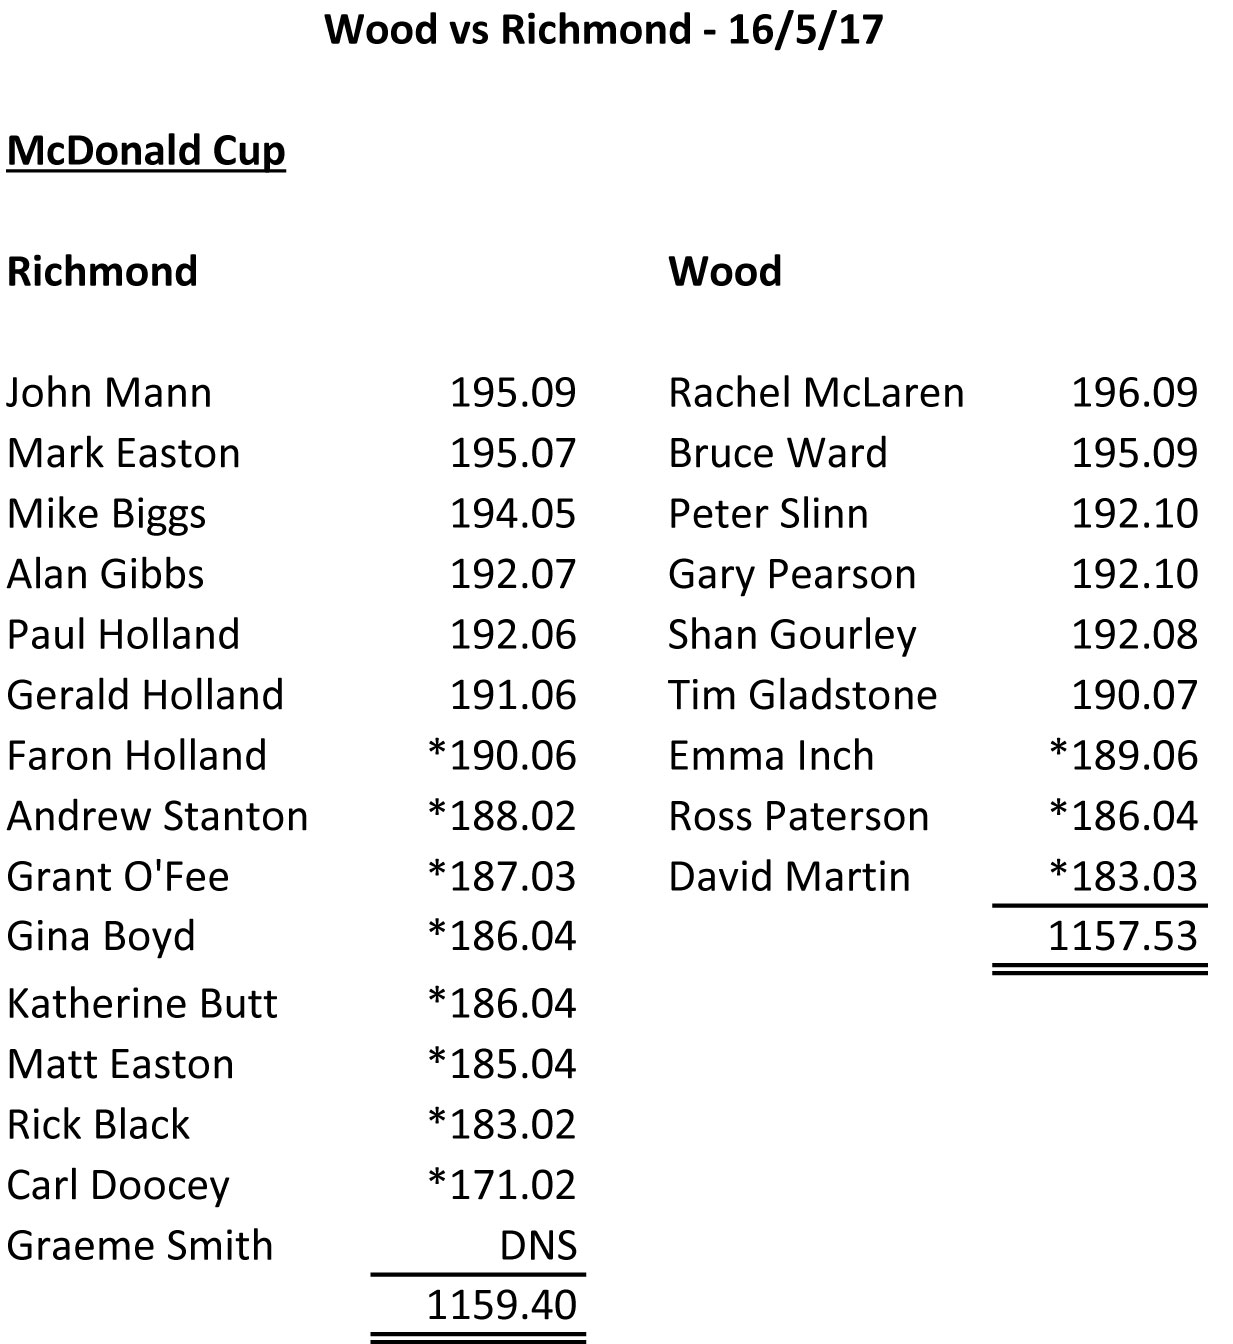 Wood-vs-Richmond-McDonalda-